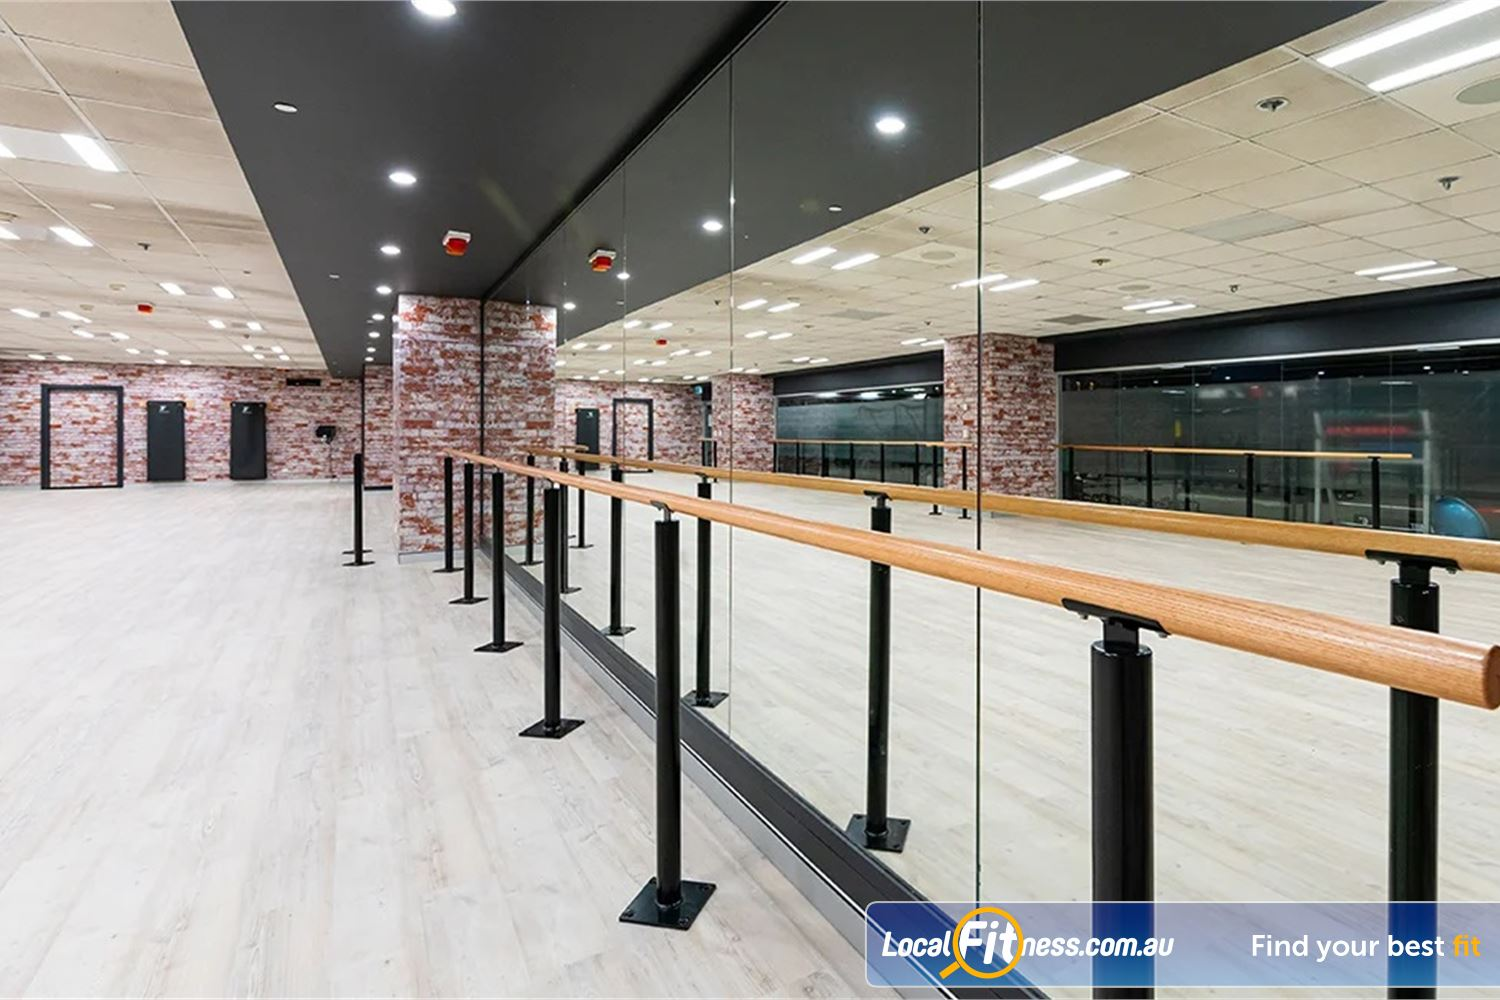 Fitness First Platinum Pitt St Near World Square Dedicated Yoga/Barre studio offering Pilates, Barre and more.